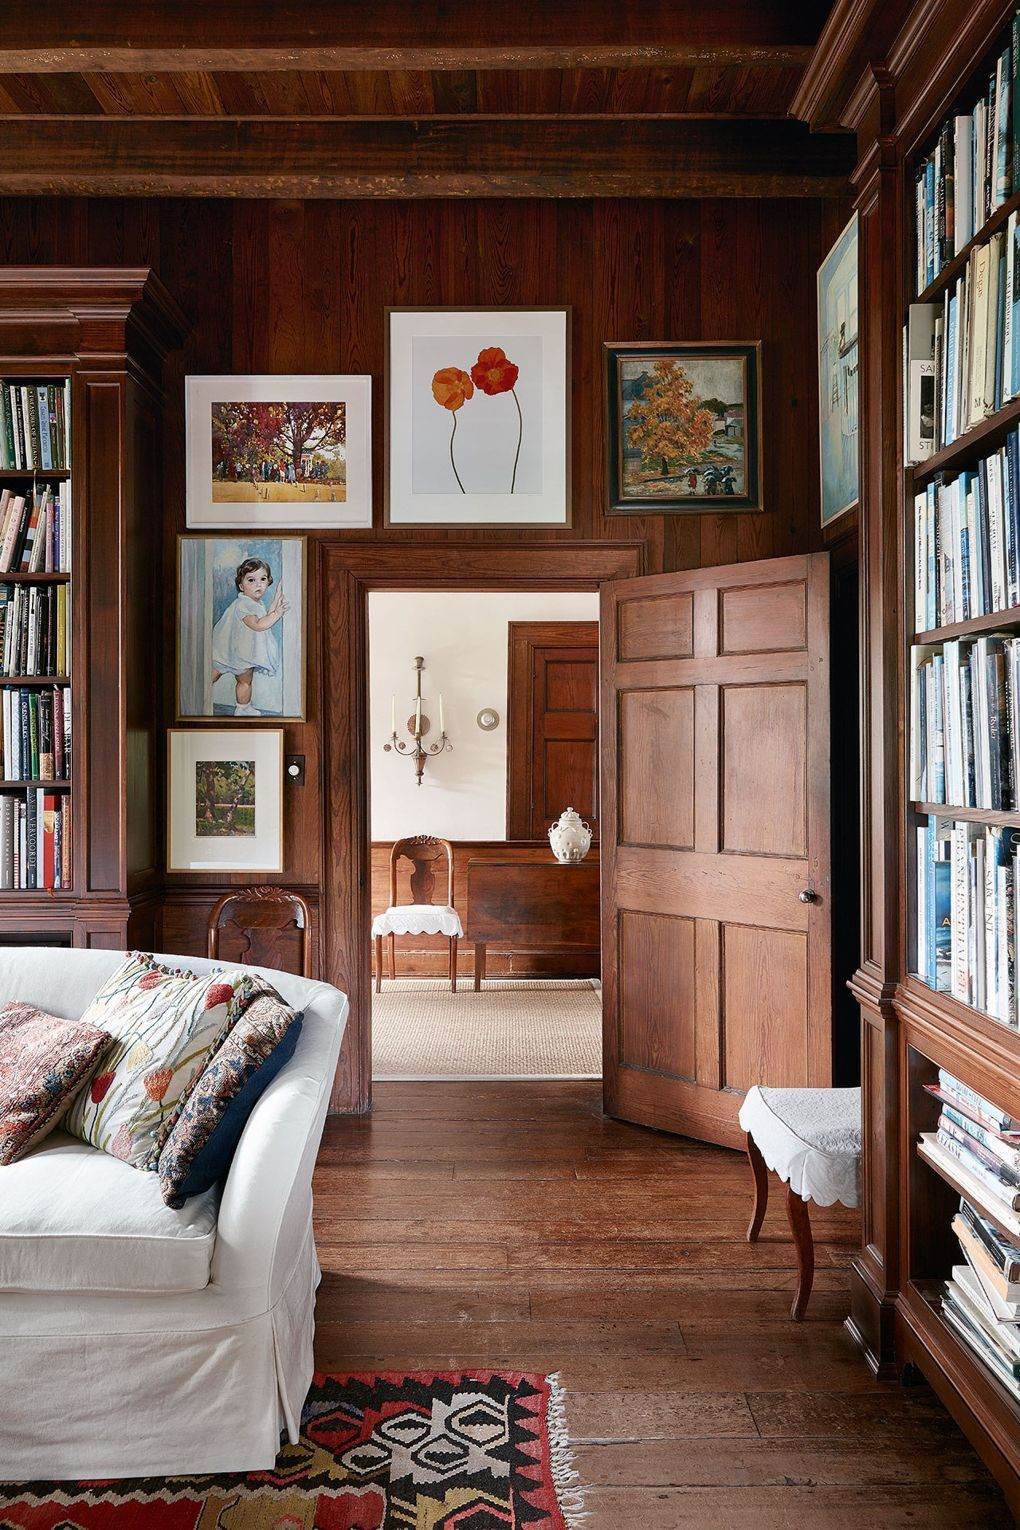 Wood Paneled Room Design: An Artist's Eighteenth-century House In Virginia